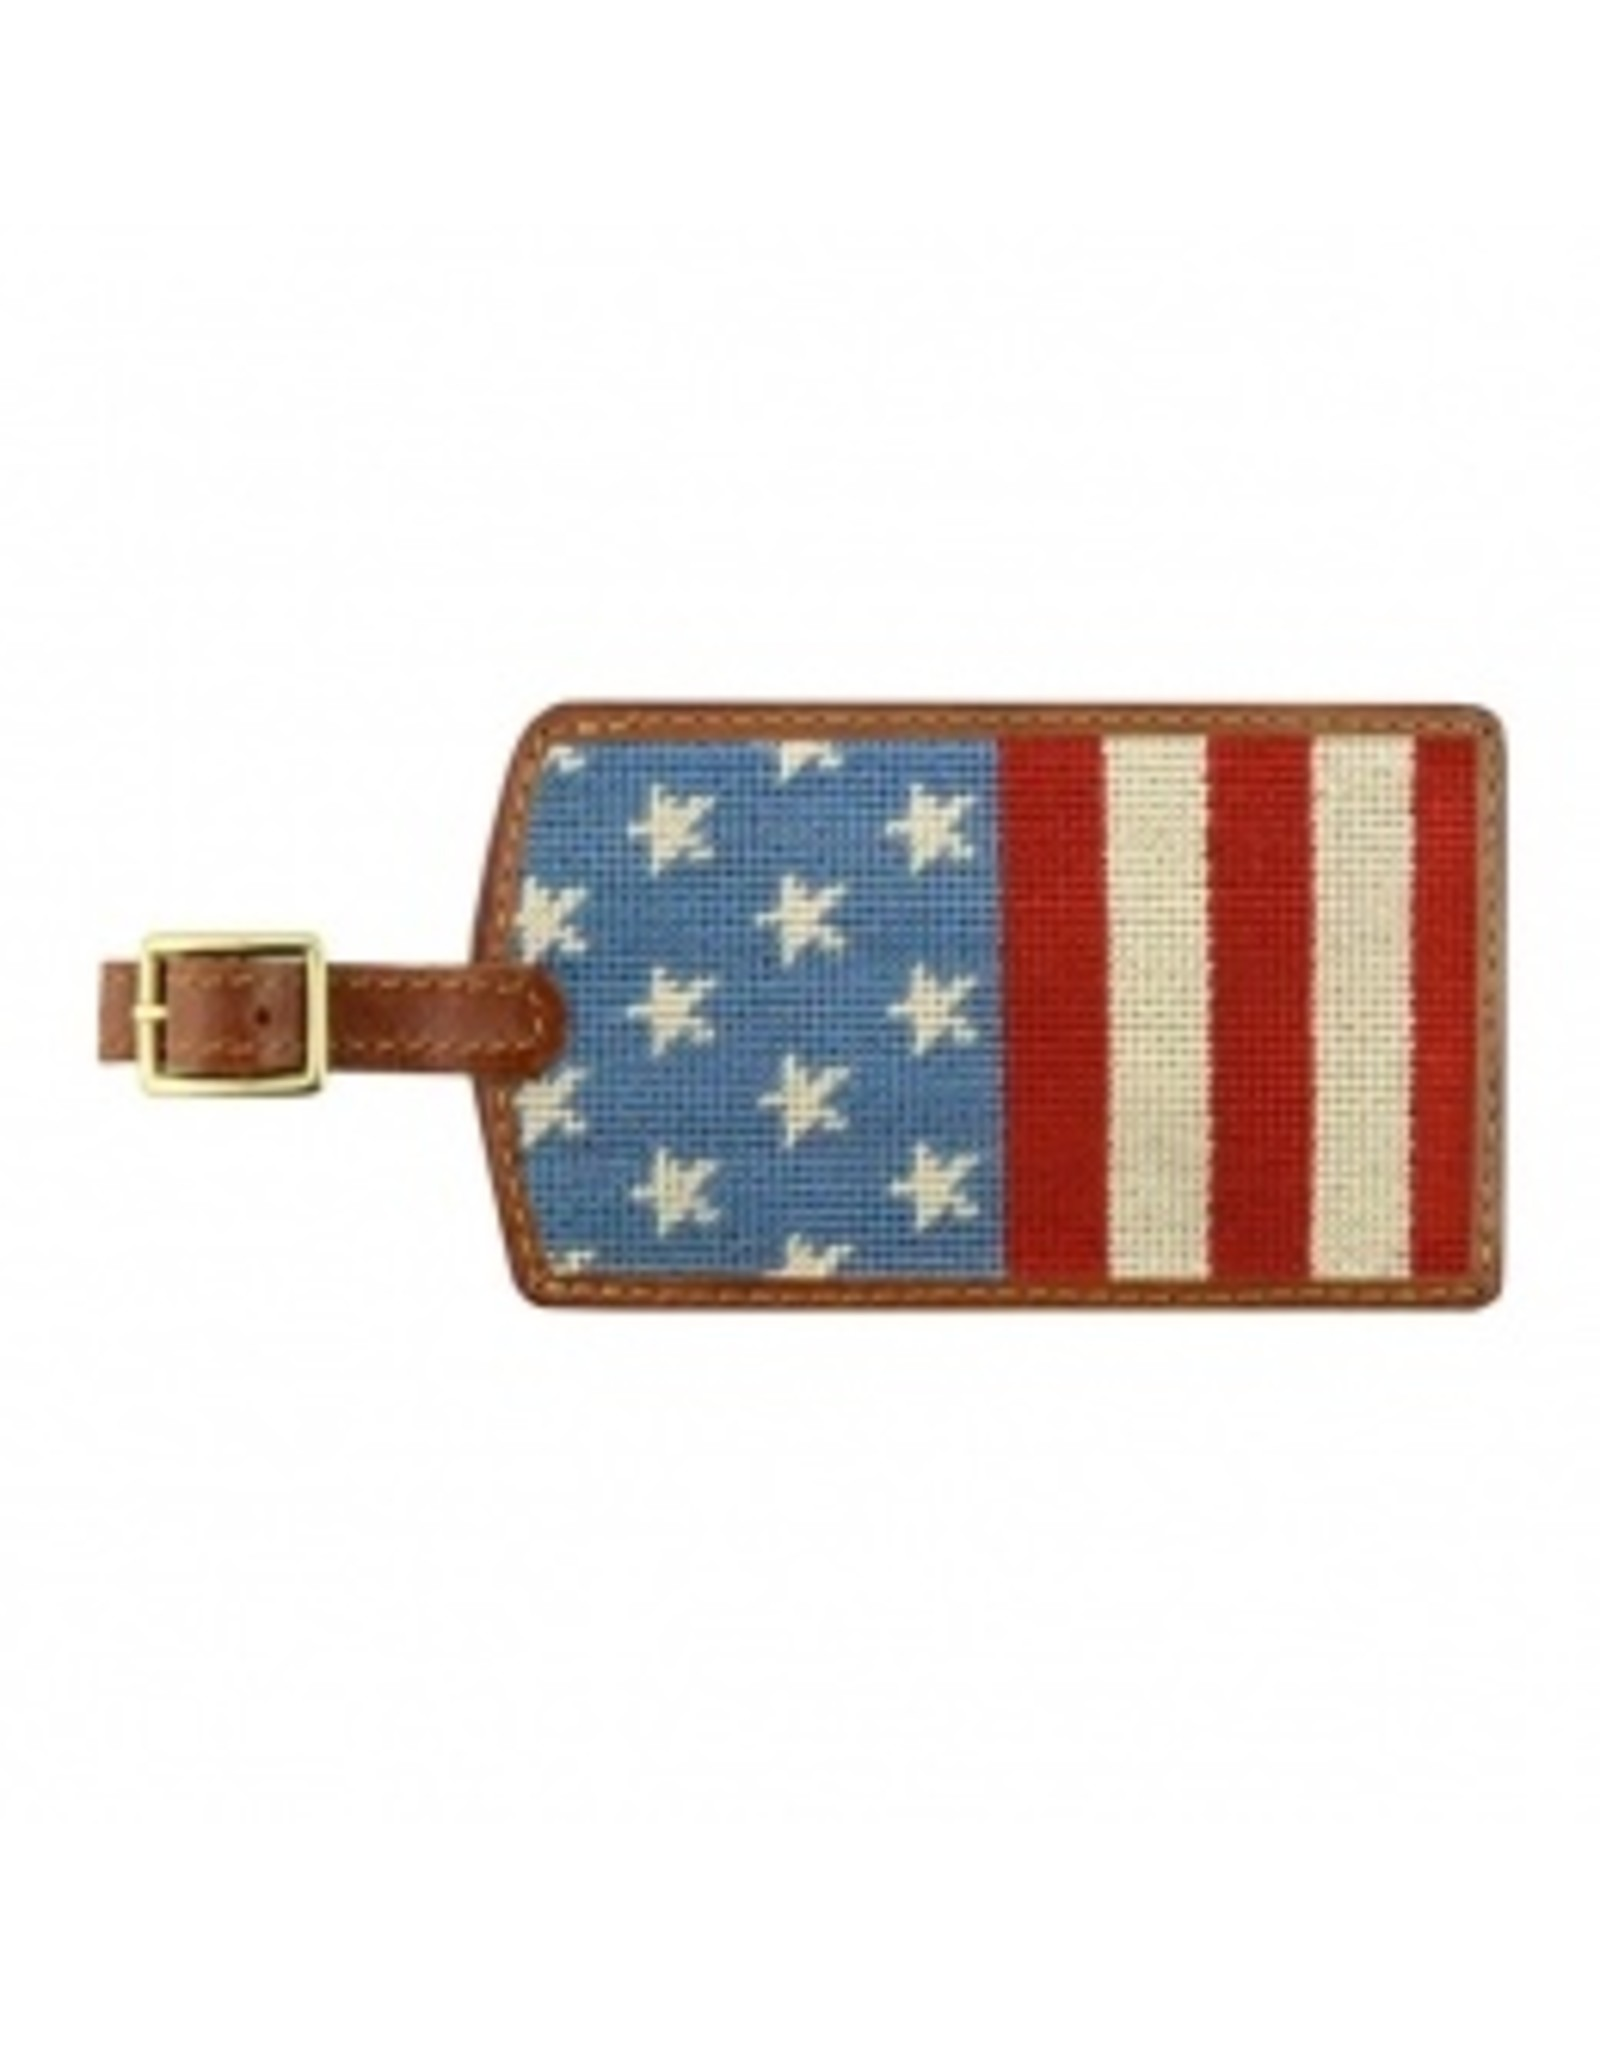 Smathers & Branson S&B Luggage Tag, Stars & Stripes